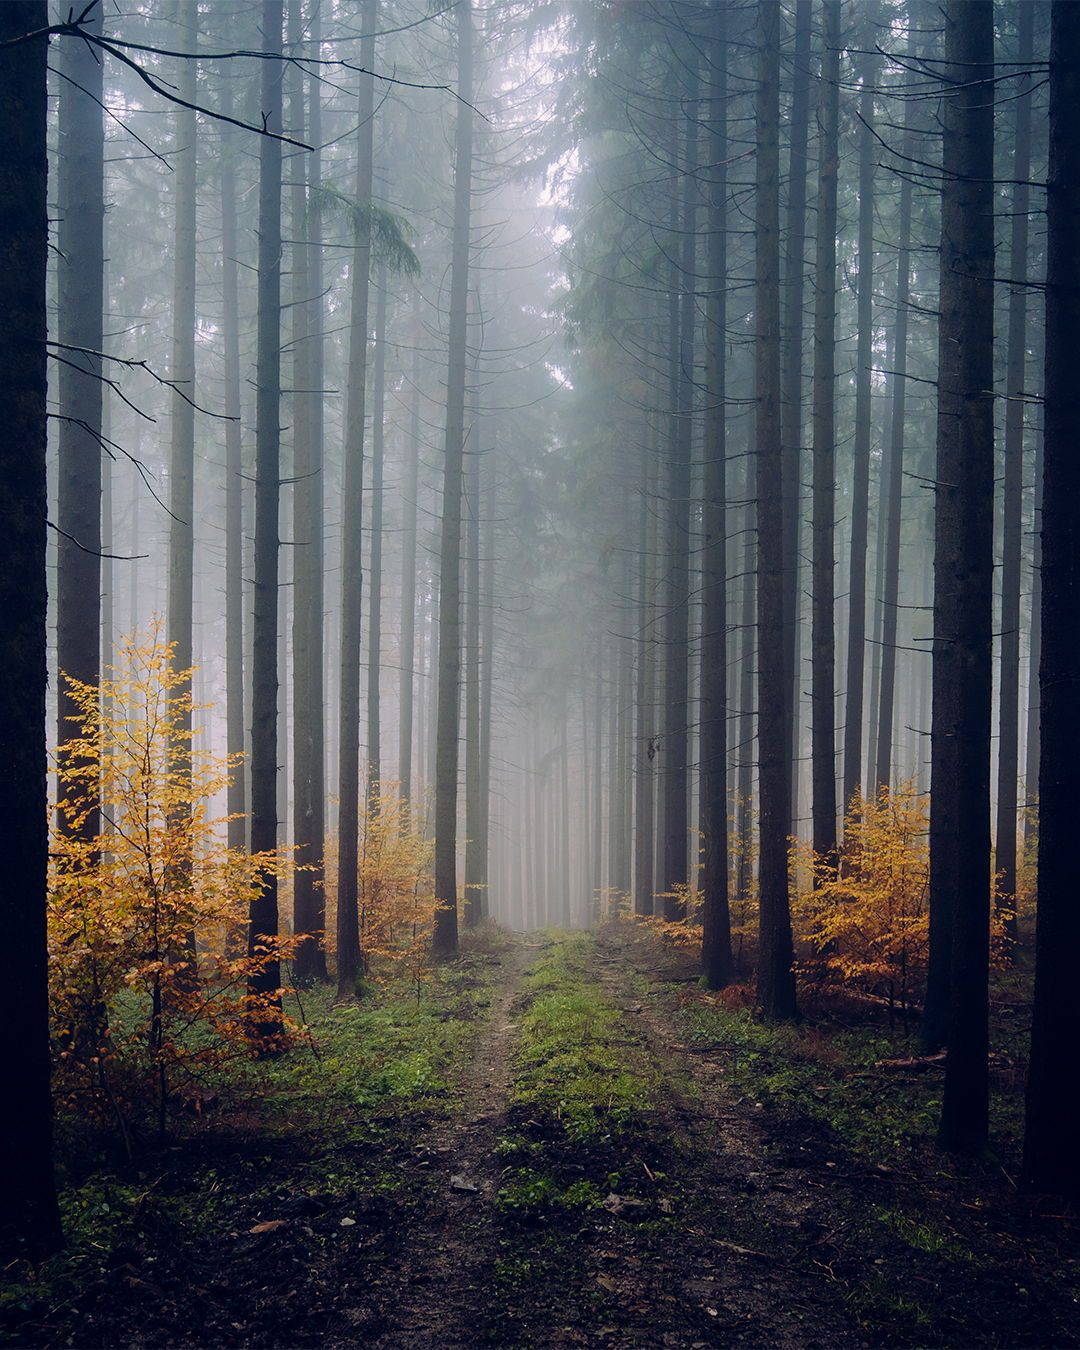 Autumn Forest In Germany In 2020 Fine Art Landscape Photography Landscape Photography Creative Photography Techniques